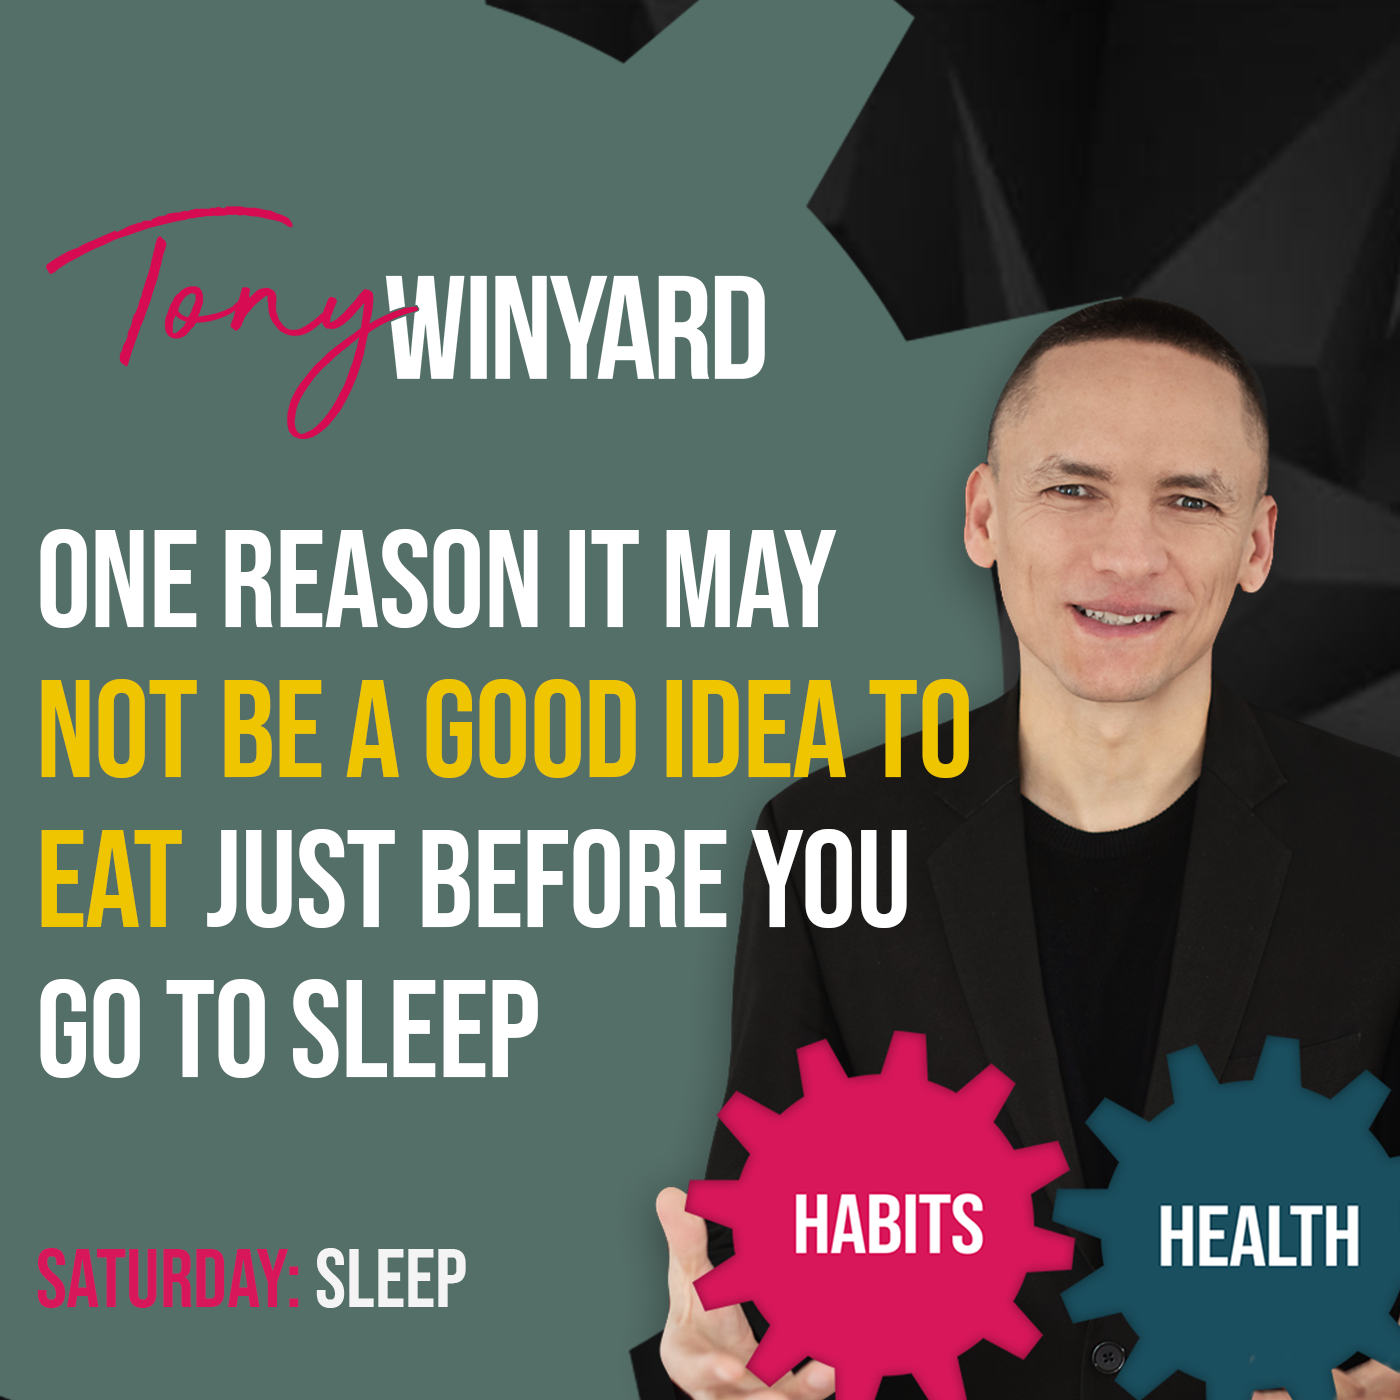 One reason it may not be a good idea to eat just before you go to sleep